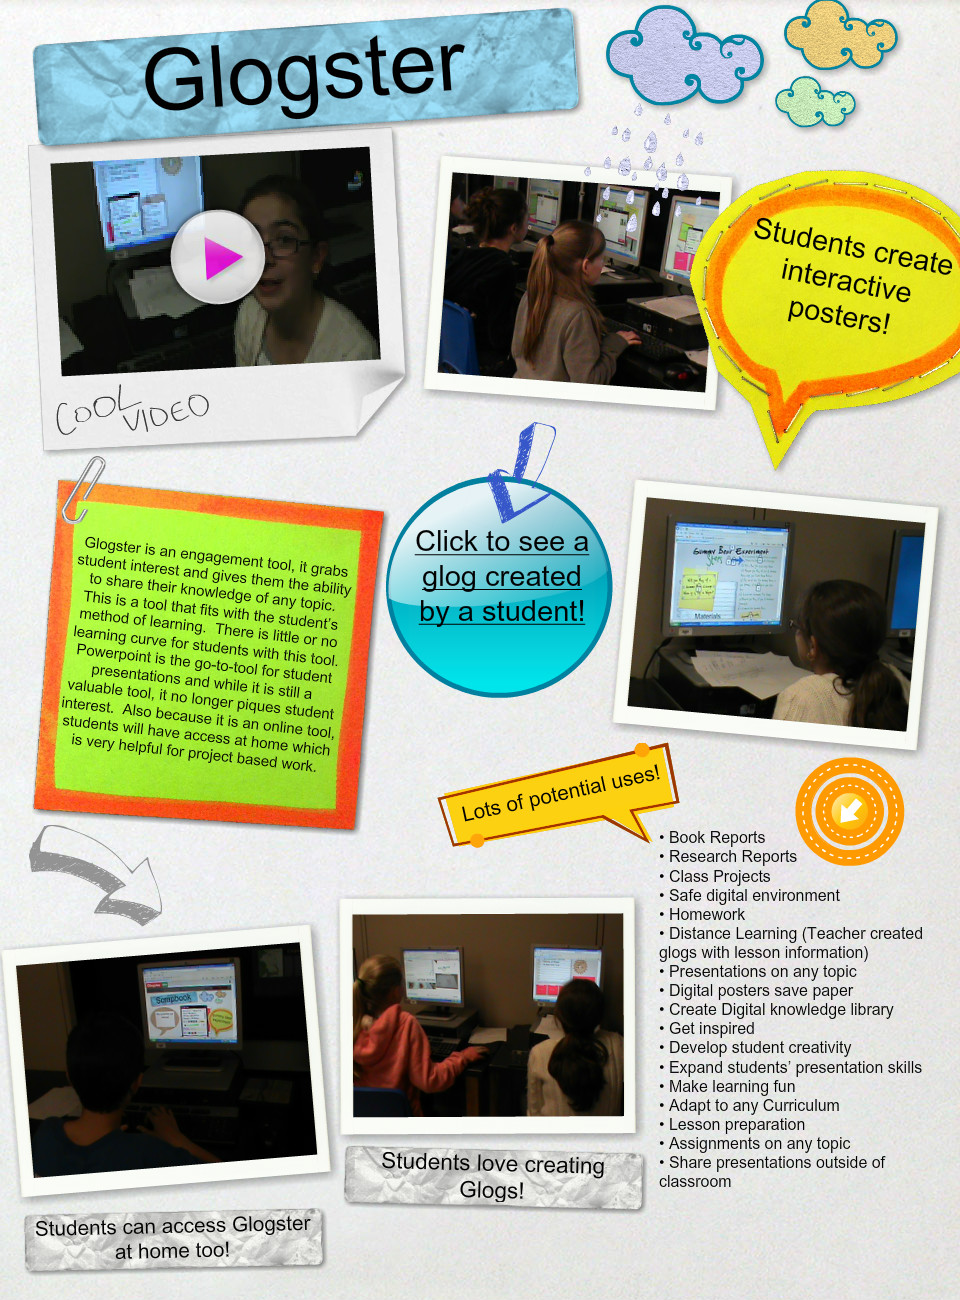 Using Glogster! : text, images, music, video   Glogster EDU